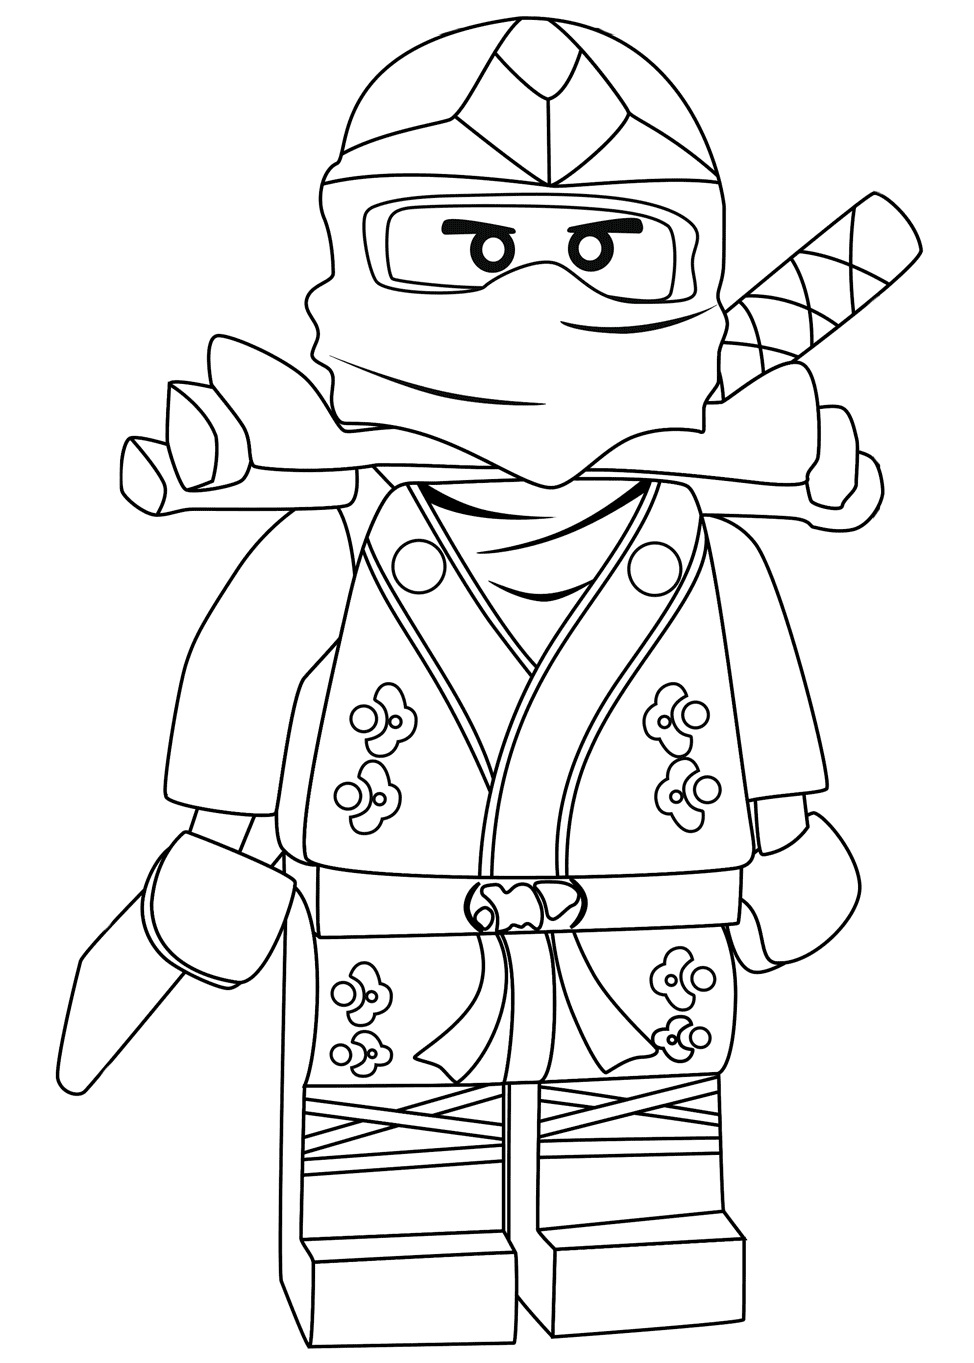 Lego Cyborg Coloring Page Free Coloring Pages Online